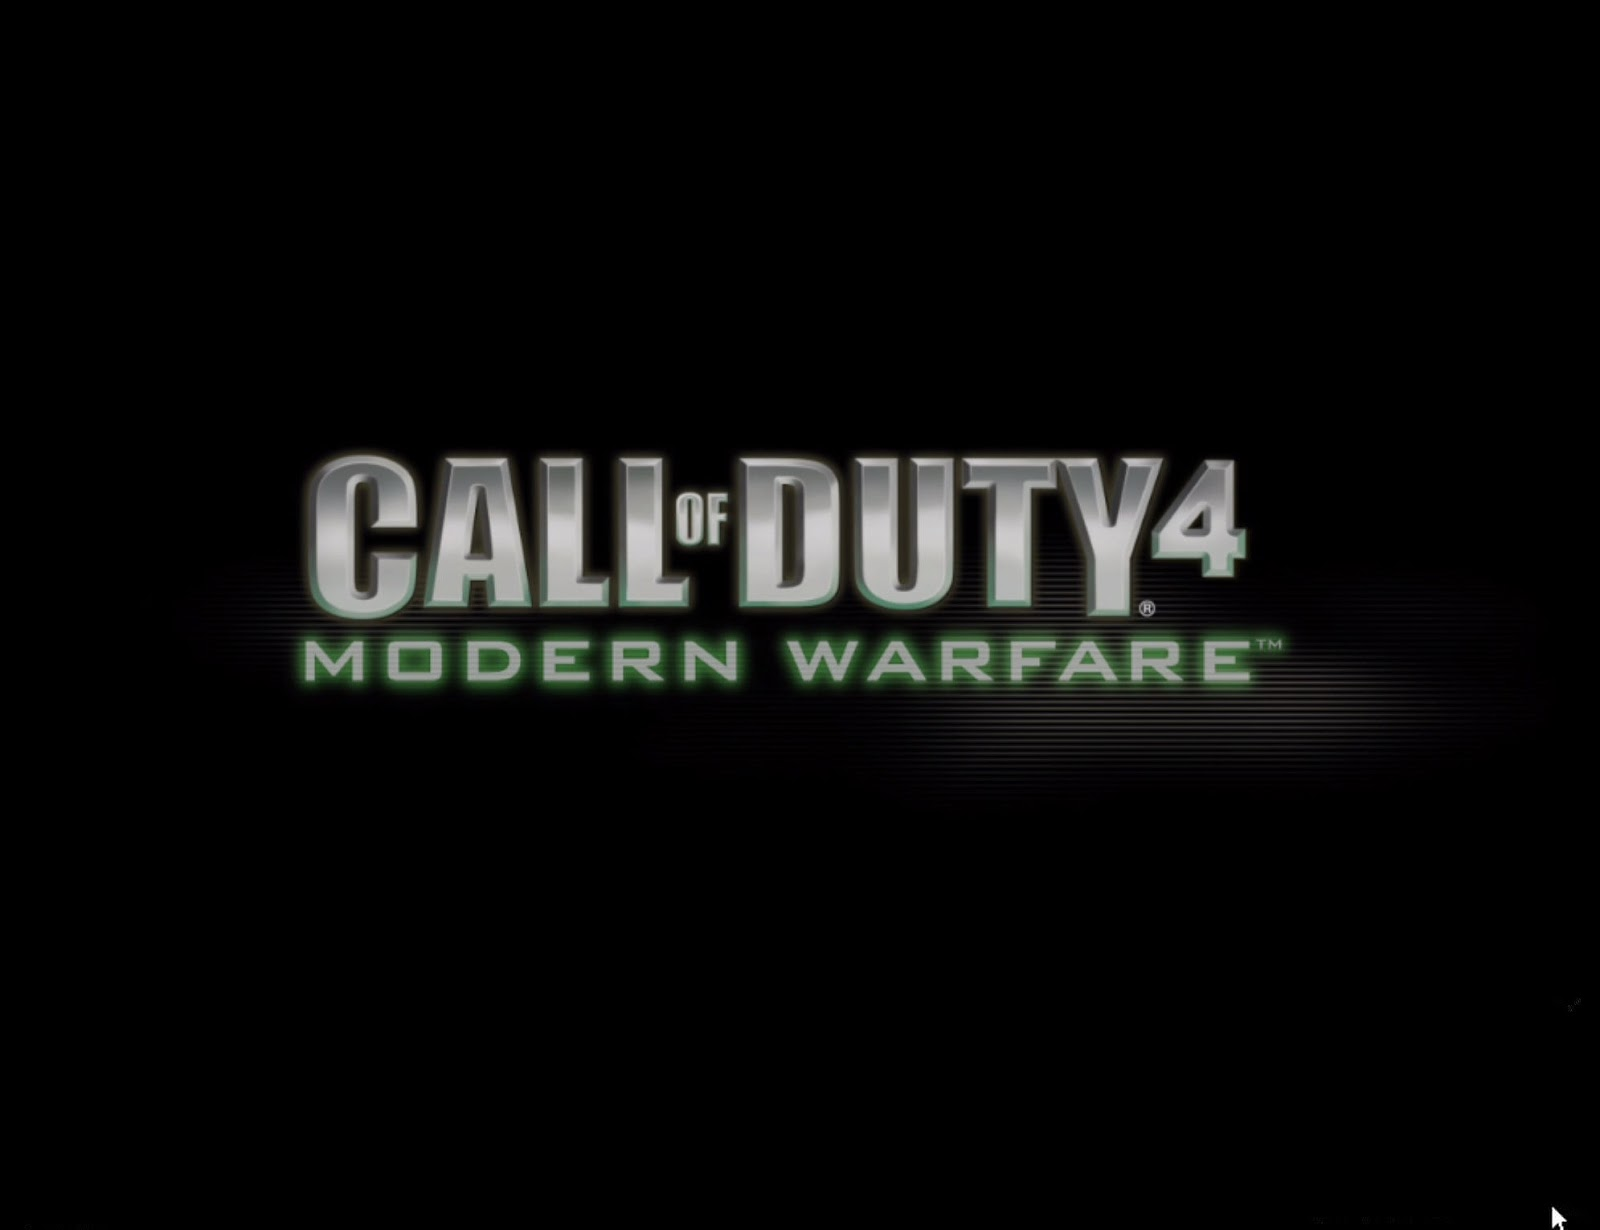 call of duty 4 download free full version